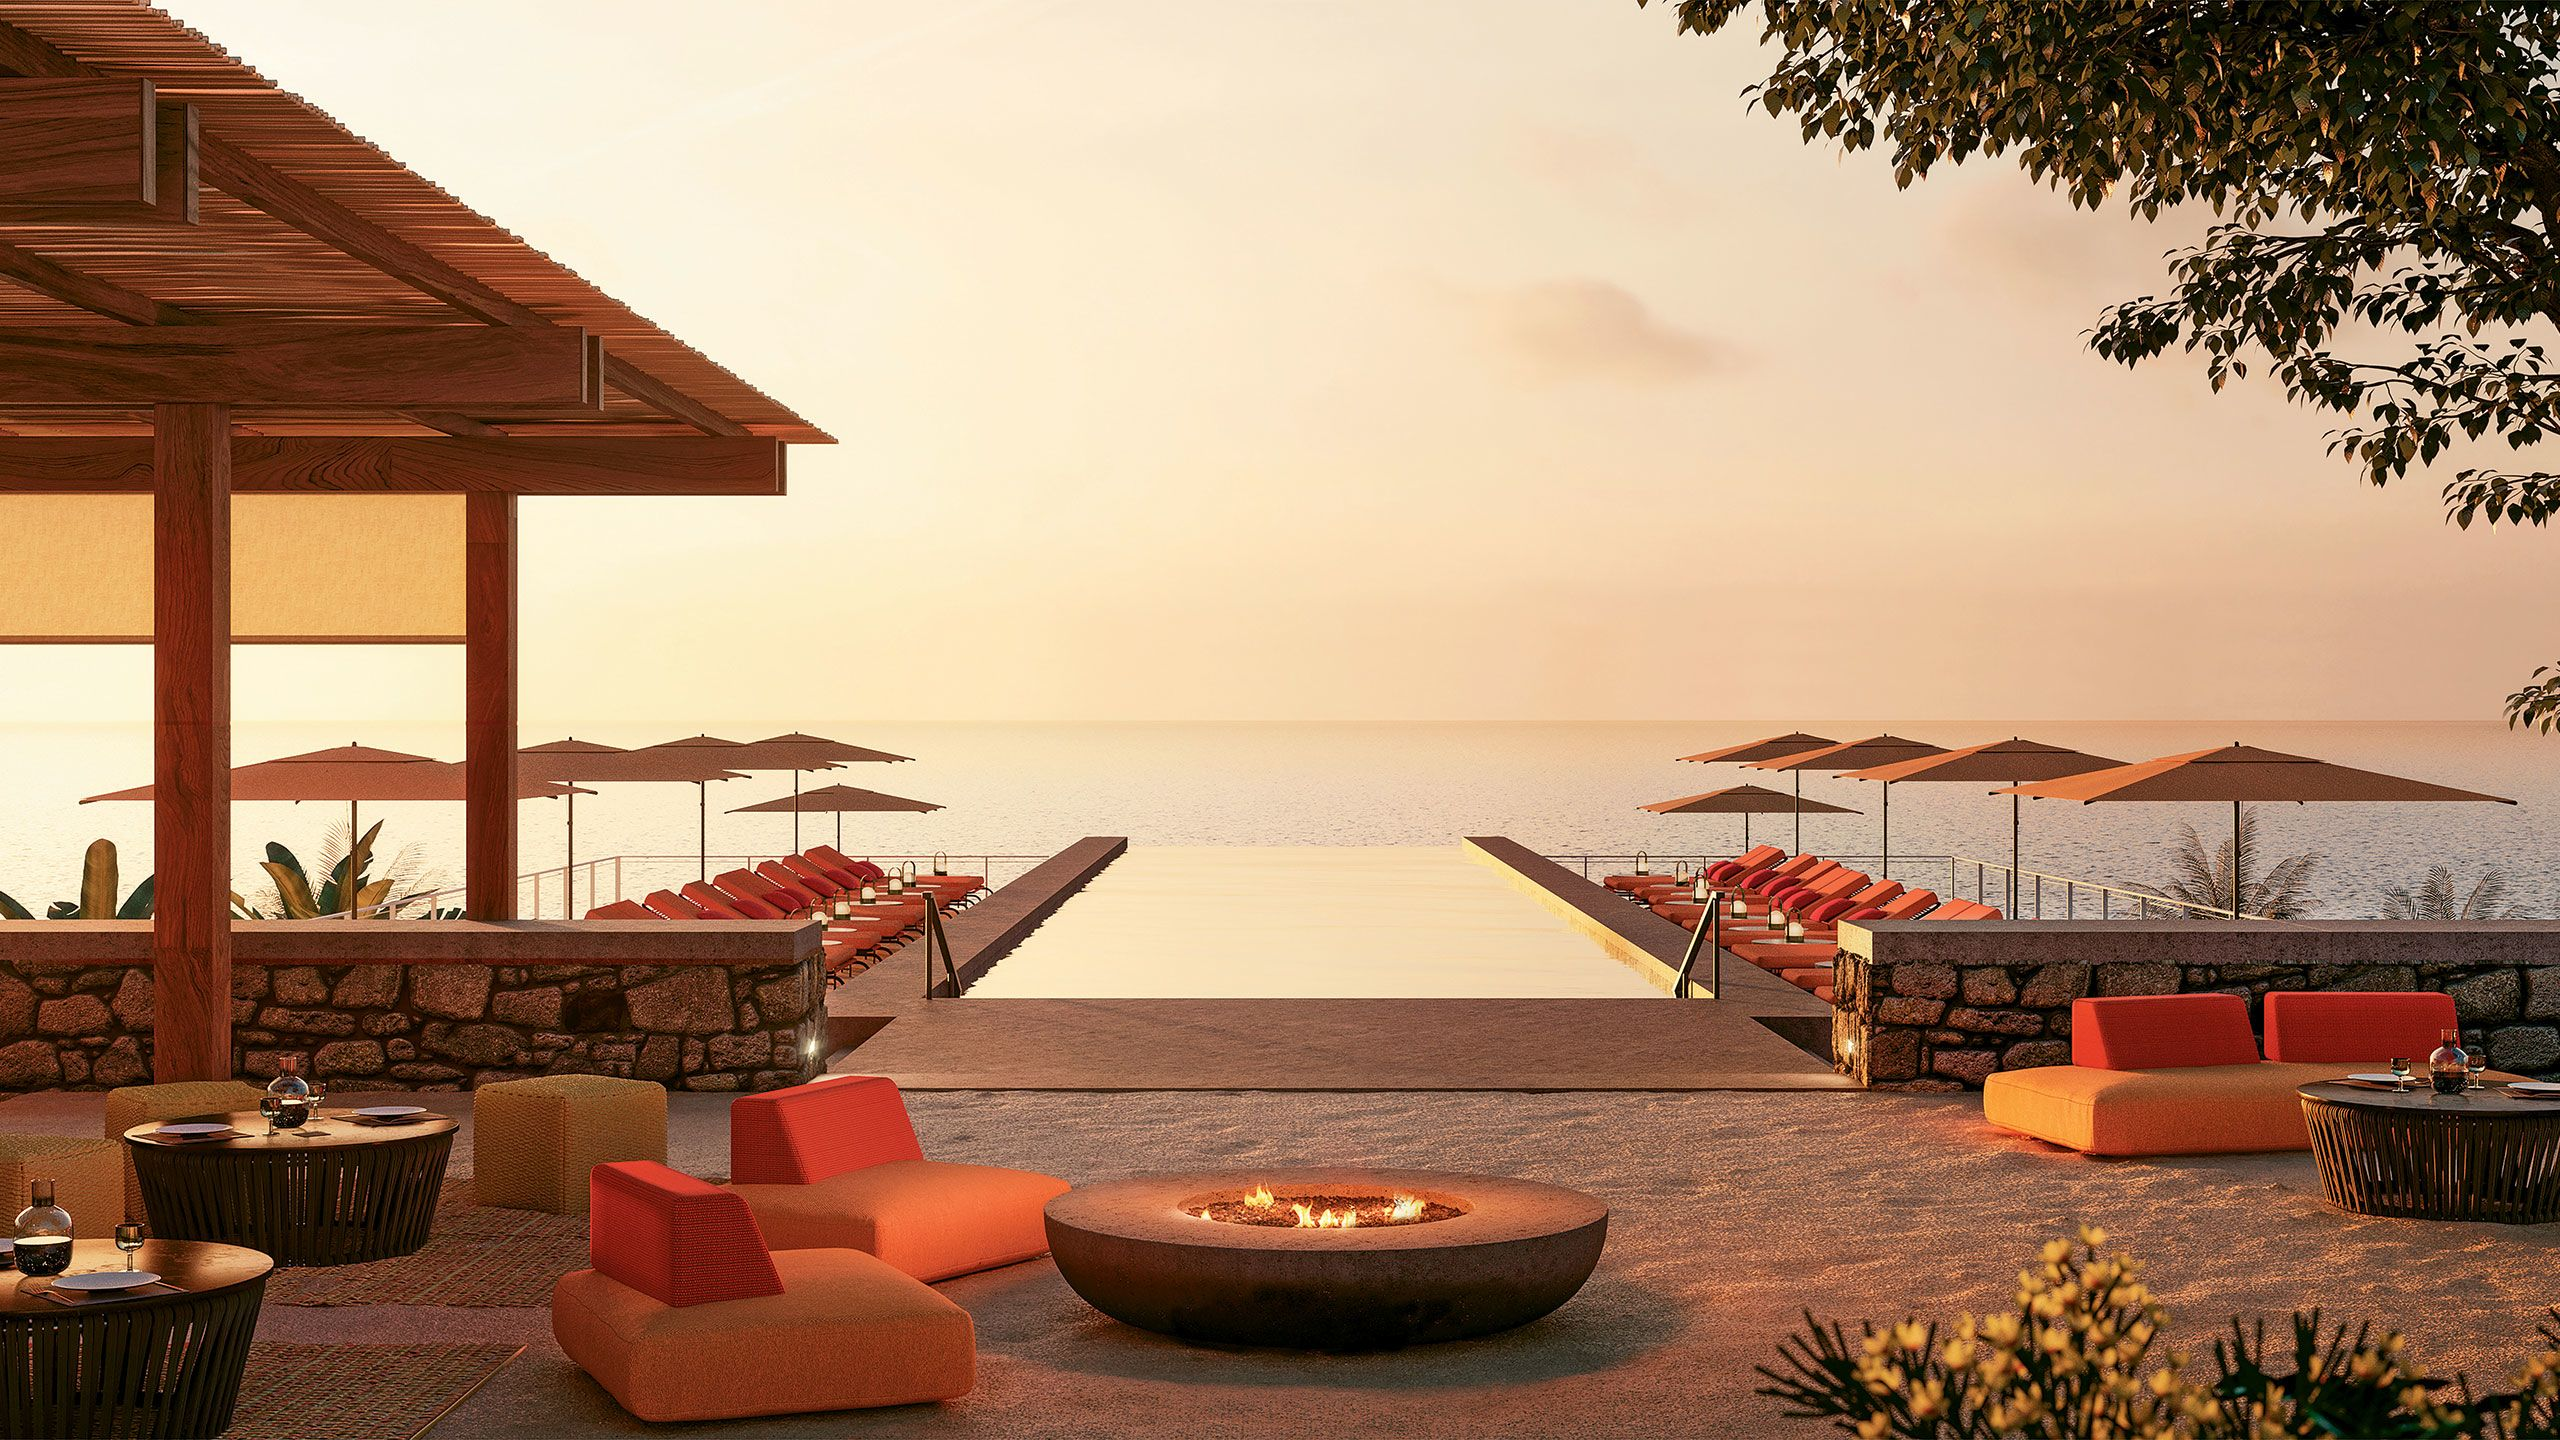 A rendering of a pool area at the One&Only Mandarina on the Riviera Nayarit